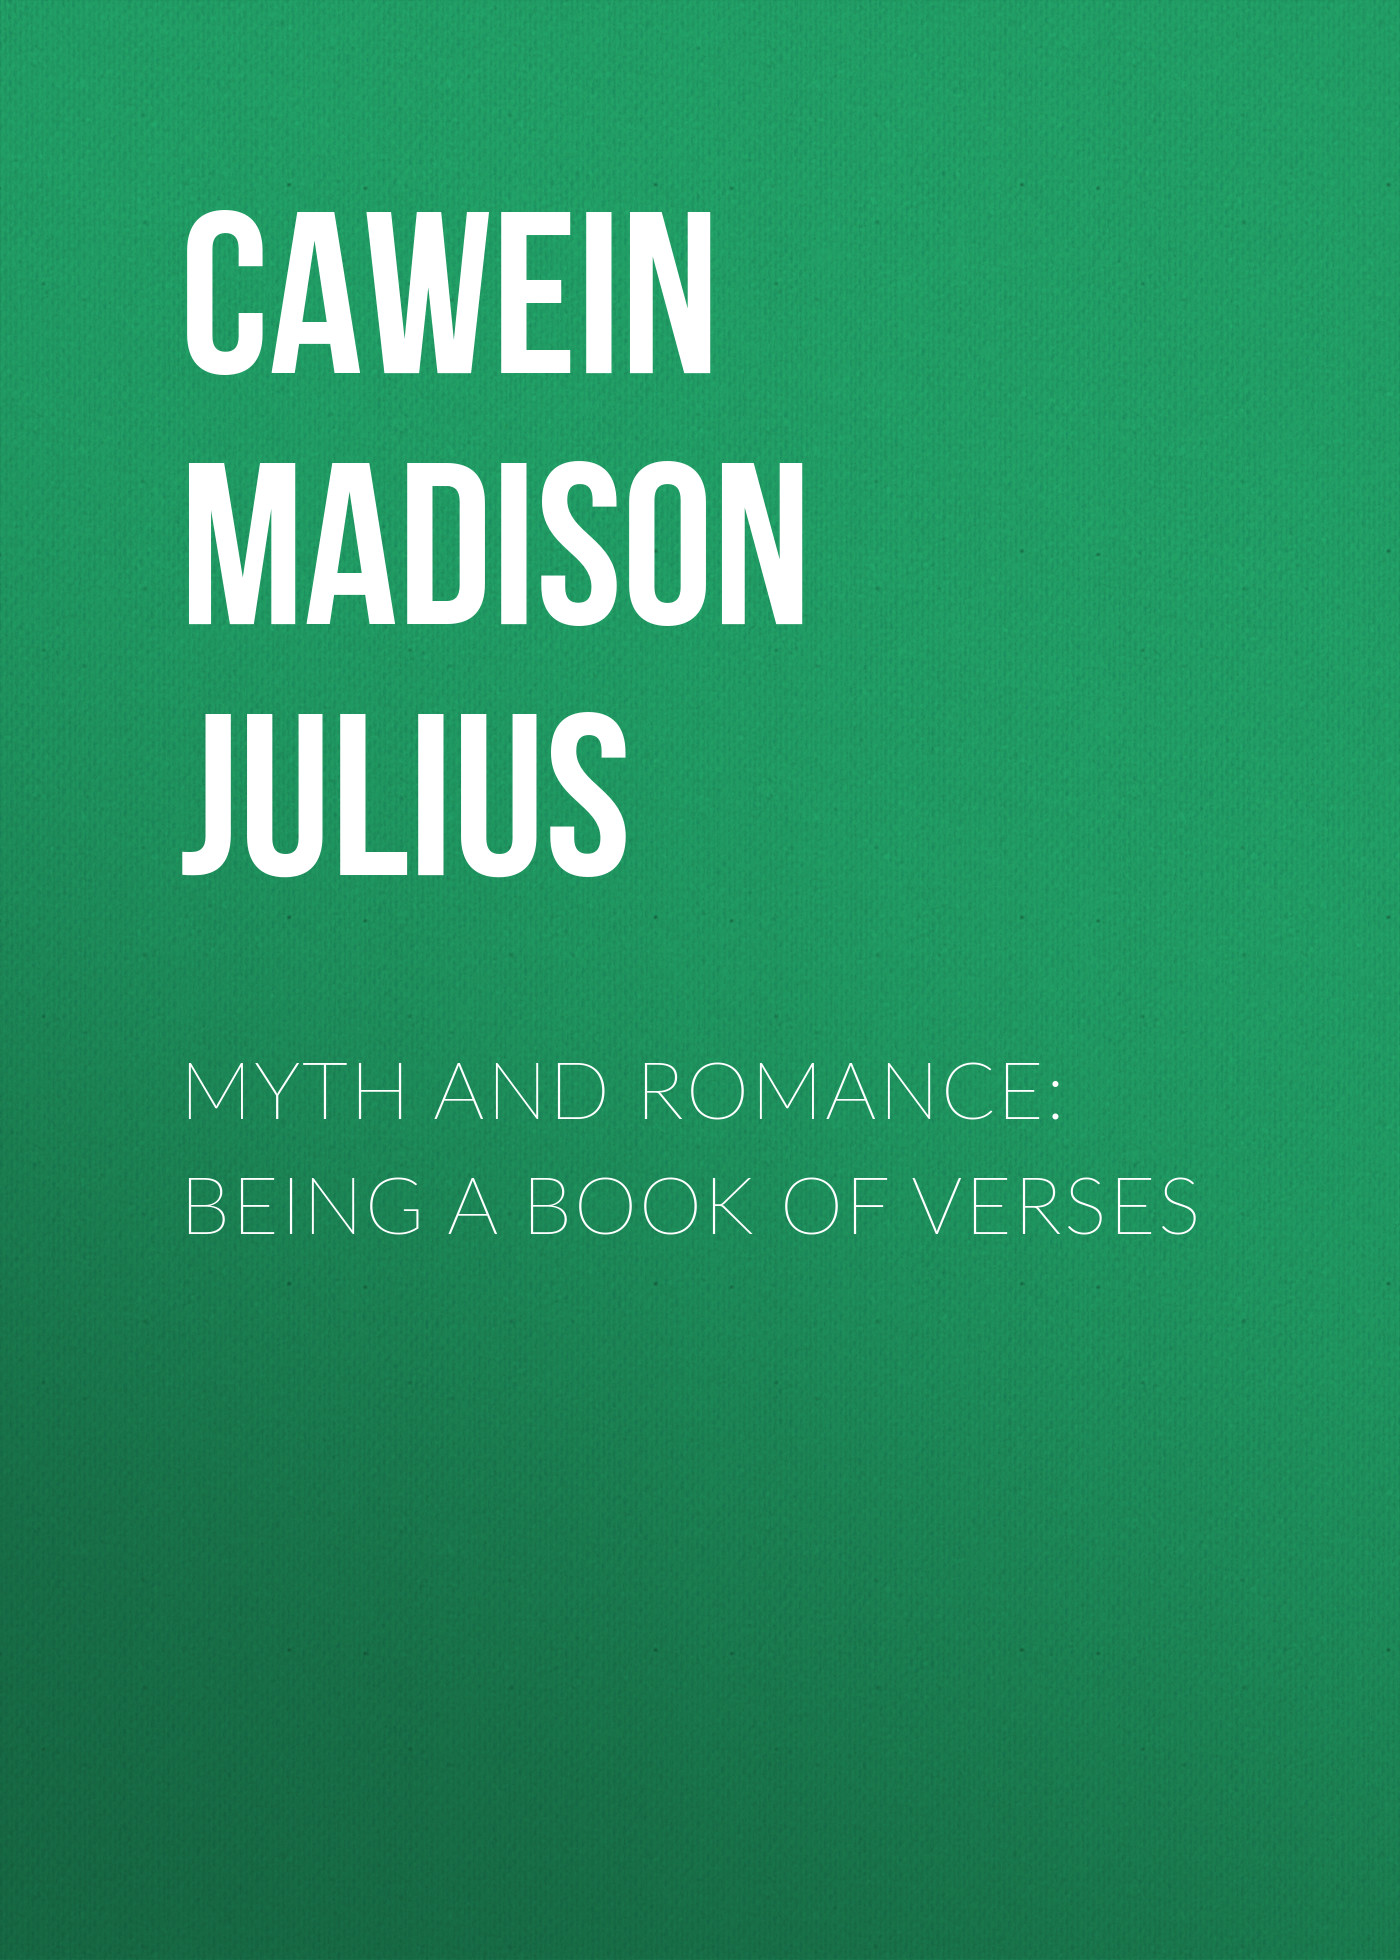 Cawein Madison Julius Myth and Romance: Being a Book of Verses